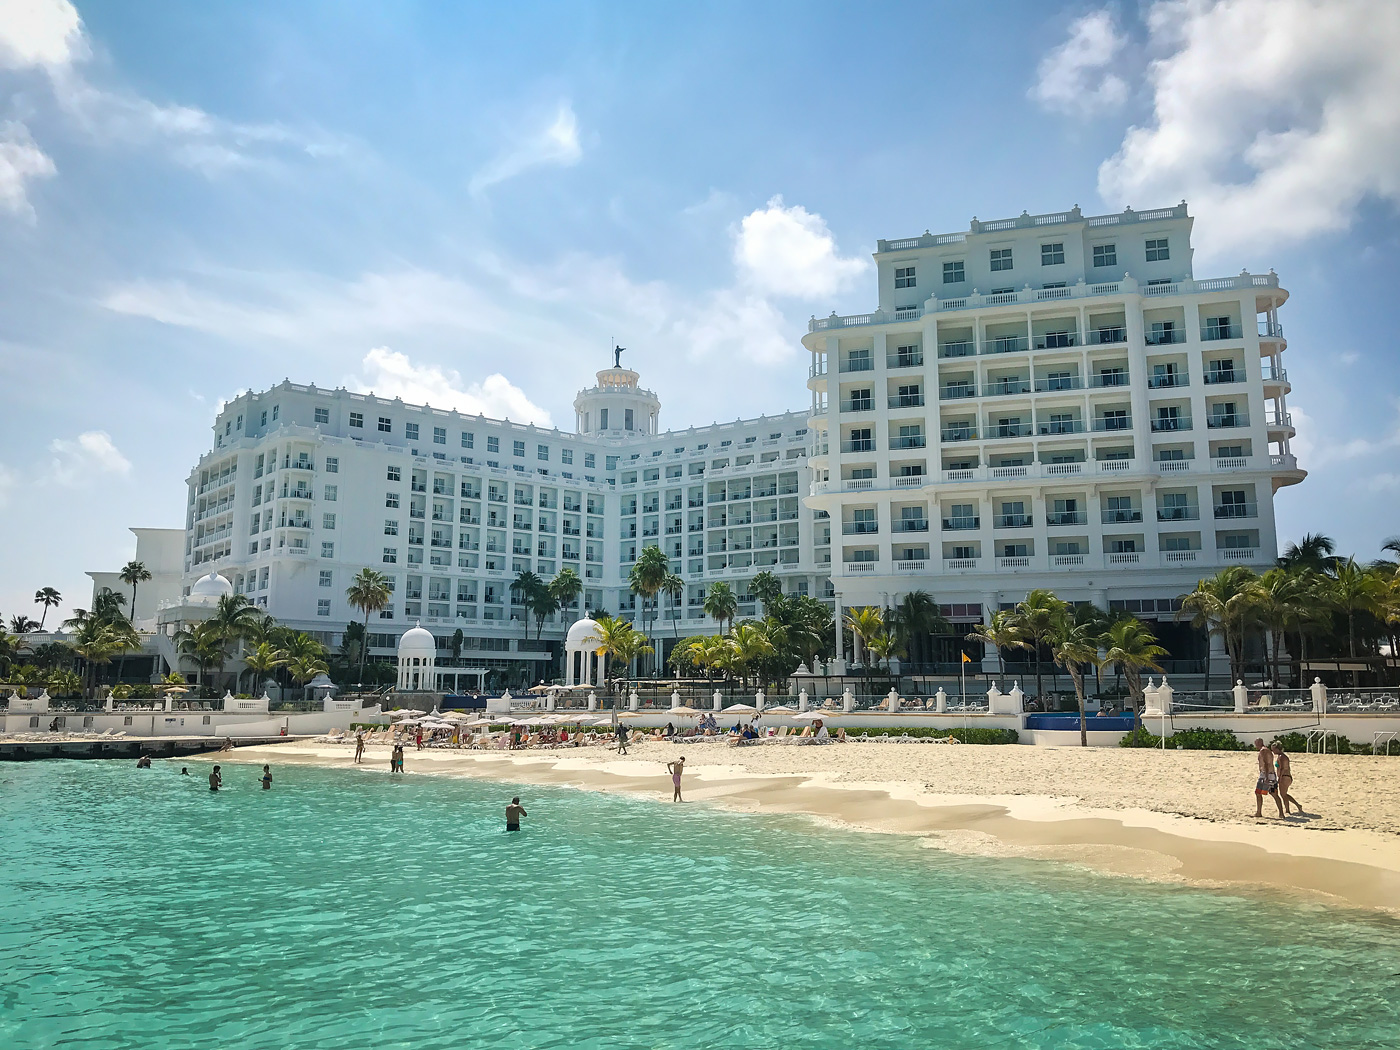 Cancun Luxury All-Inclusive Resort - Riu Palace Las Americas